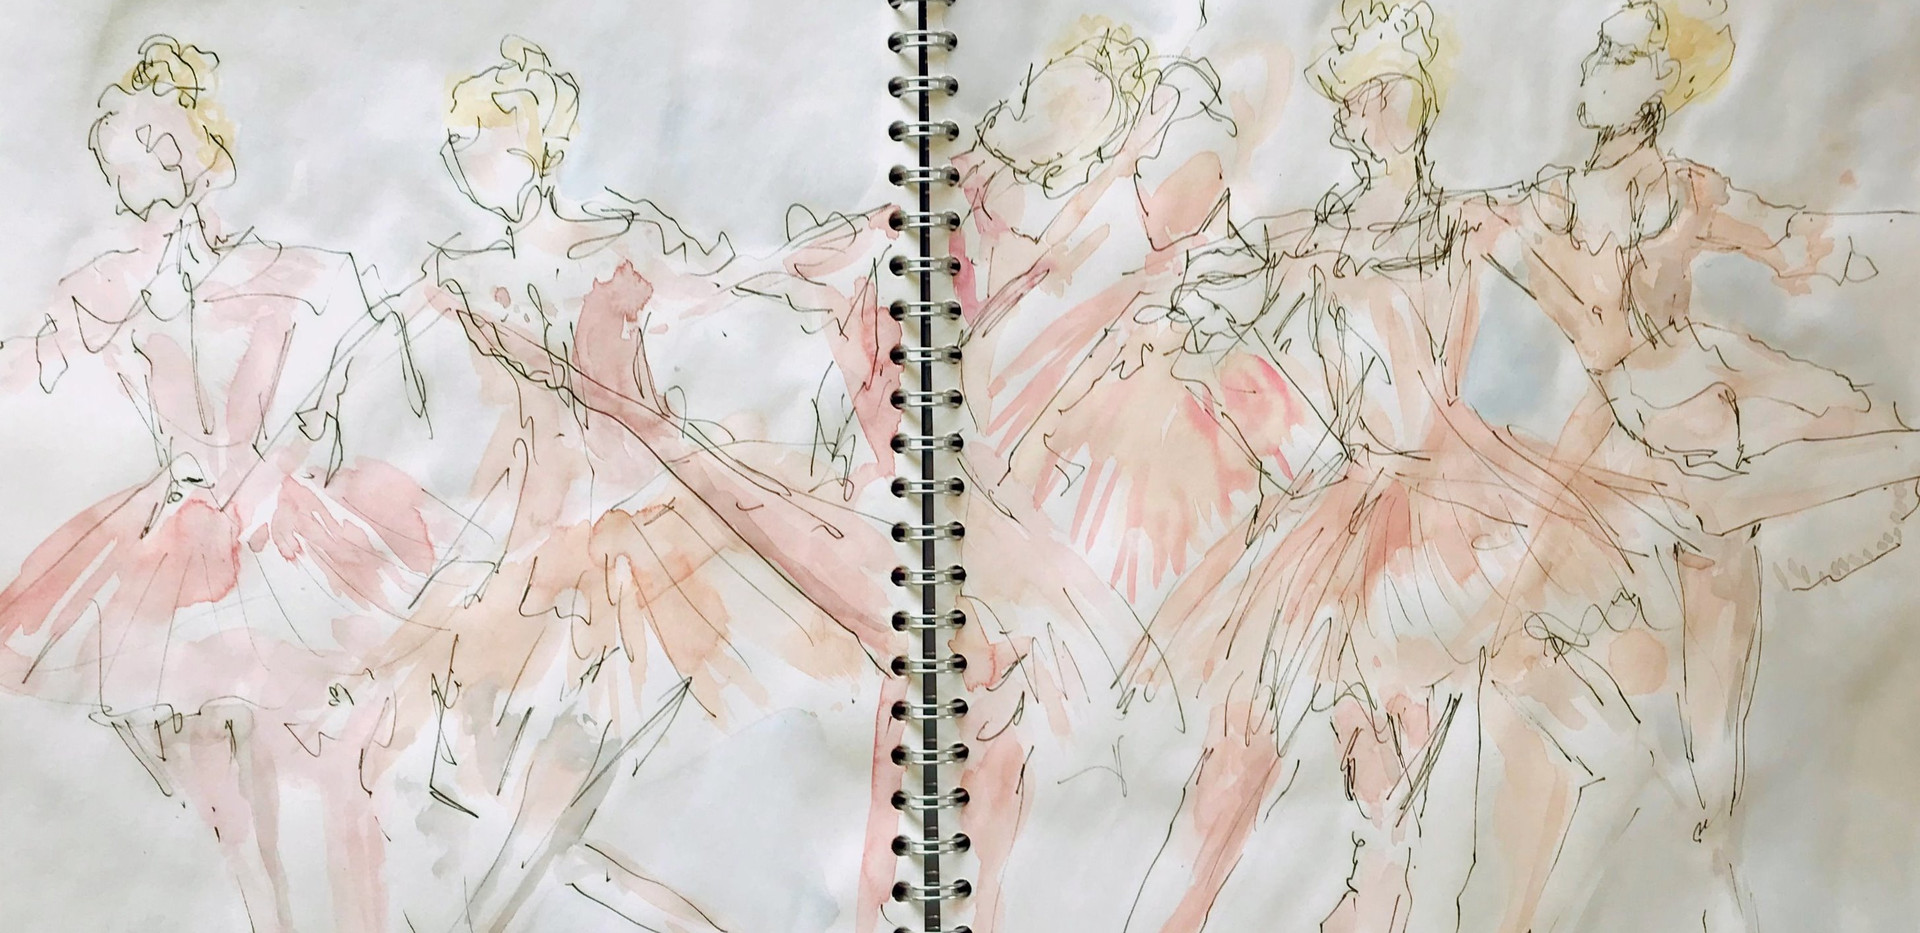 multiple poses in sequence